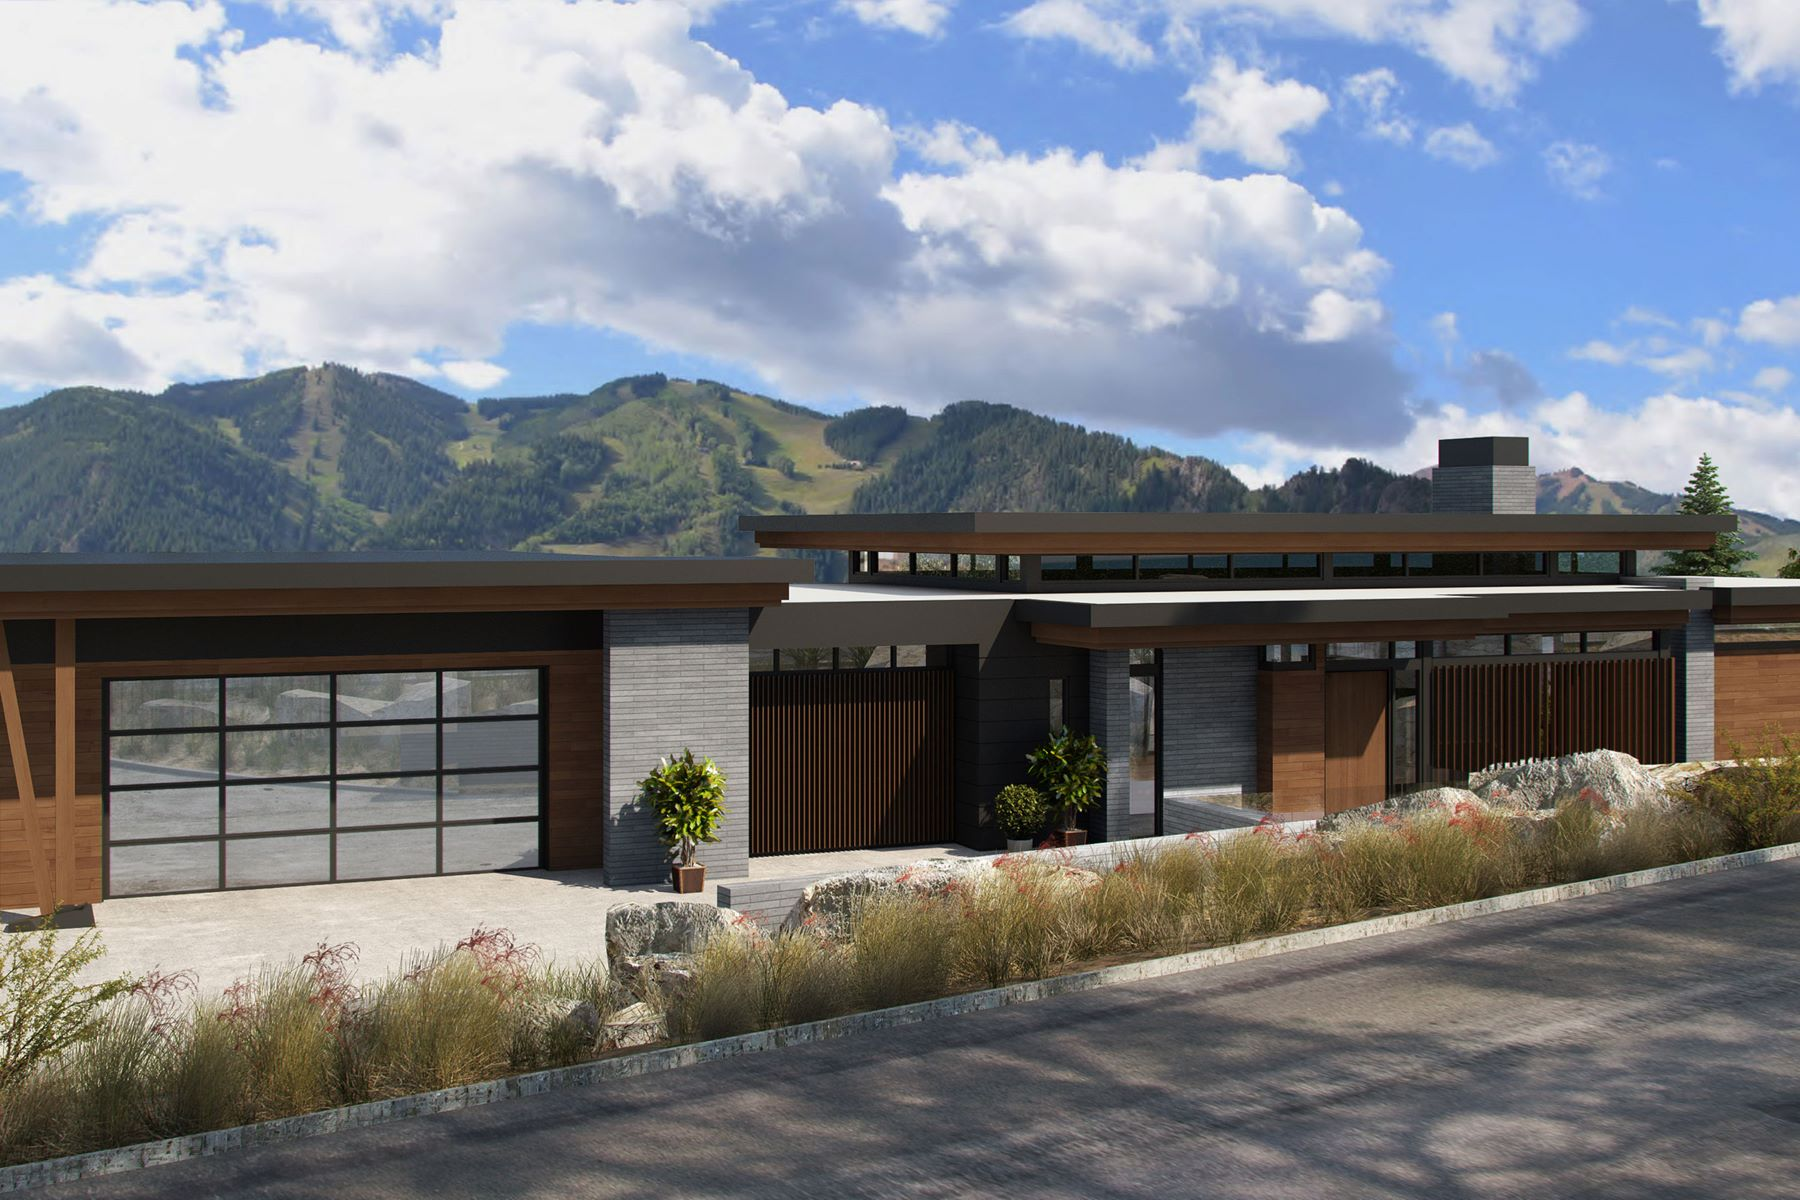 Single Family Homes for Active at The Pinnacle of Red Mountain 12 Salvation Circle Aspen, Colorado 81611 United States